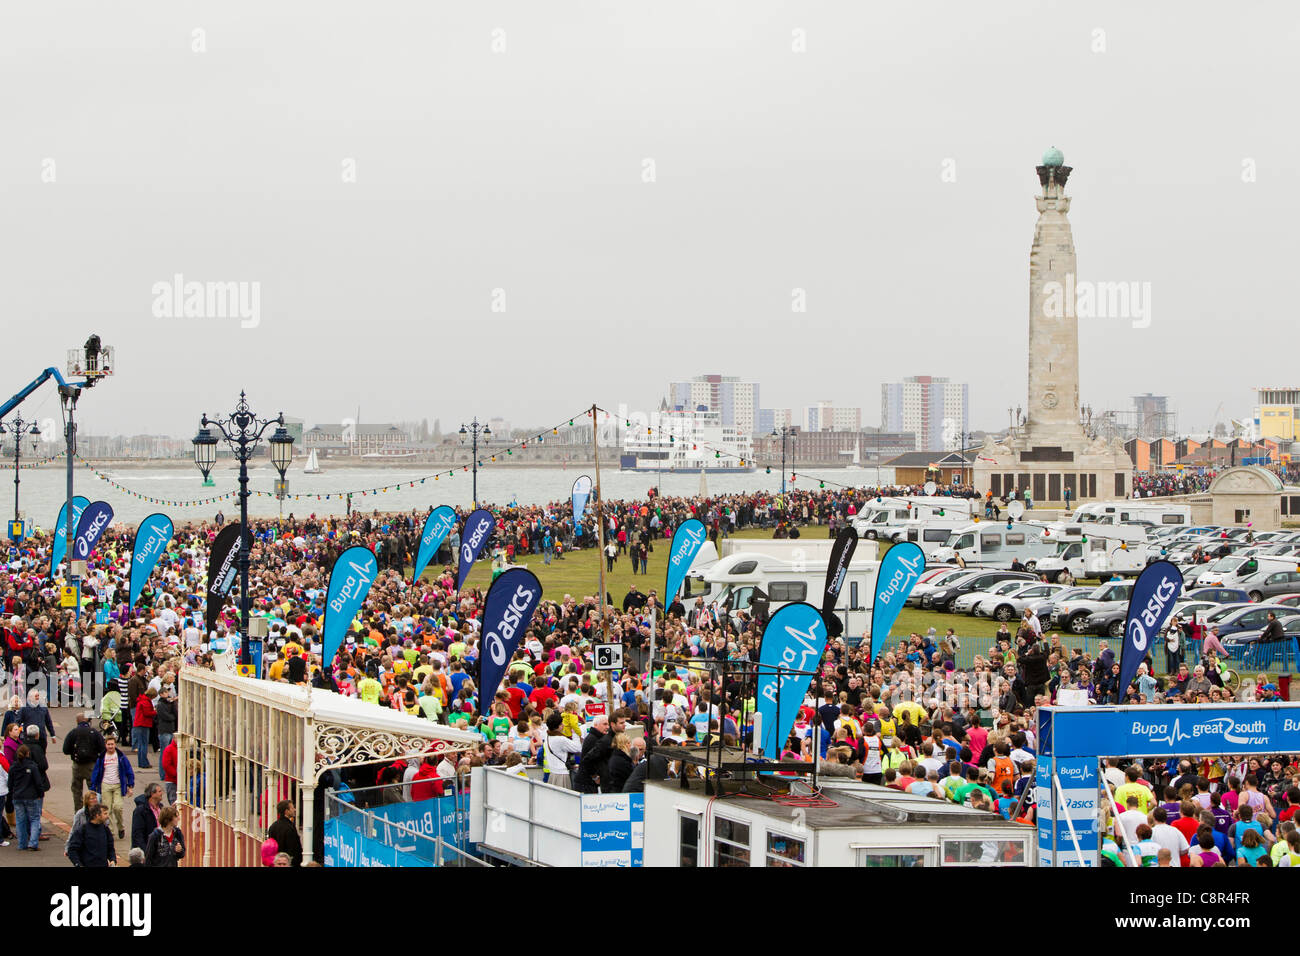 PORTSMOUTH, UK, 30/10/2011. Spectators and runnerss crowd the coast at Southsea where the Bupa Great South Run gets - Stock Image